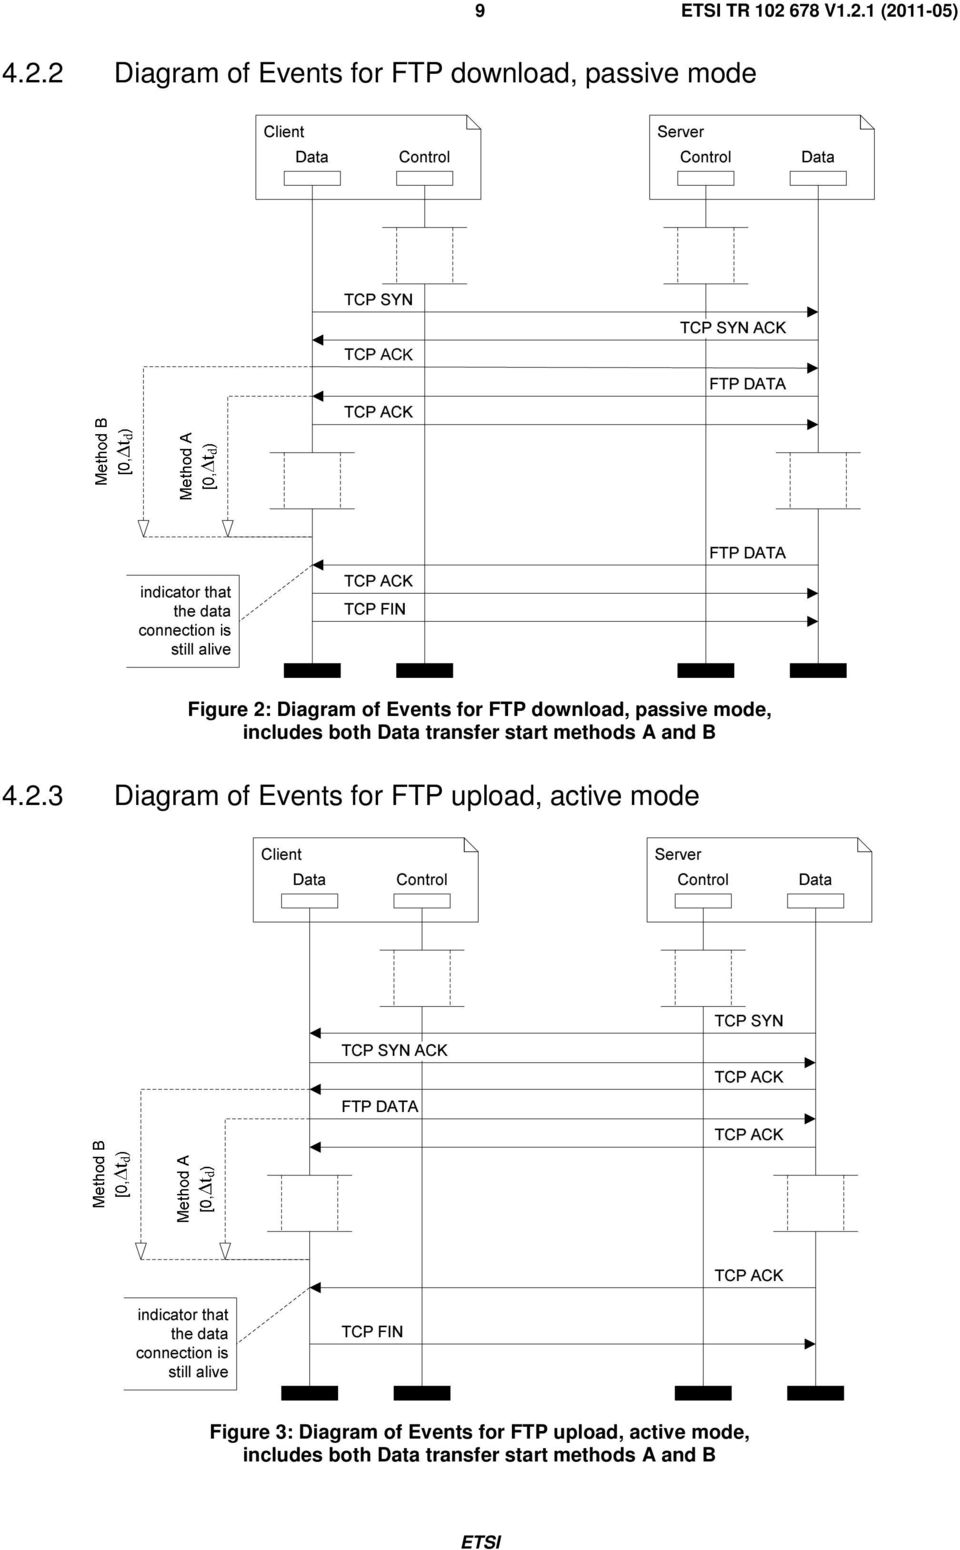 1 (2011-05) 4.2.2 Diagram of Events for FTP download, passive mode Client Server Data Control Control Data TCP SYN TCP SYN ACK FTP DATA FTP DATA